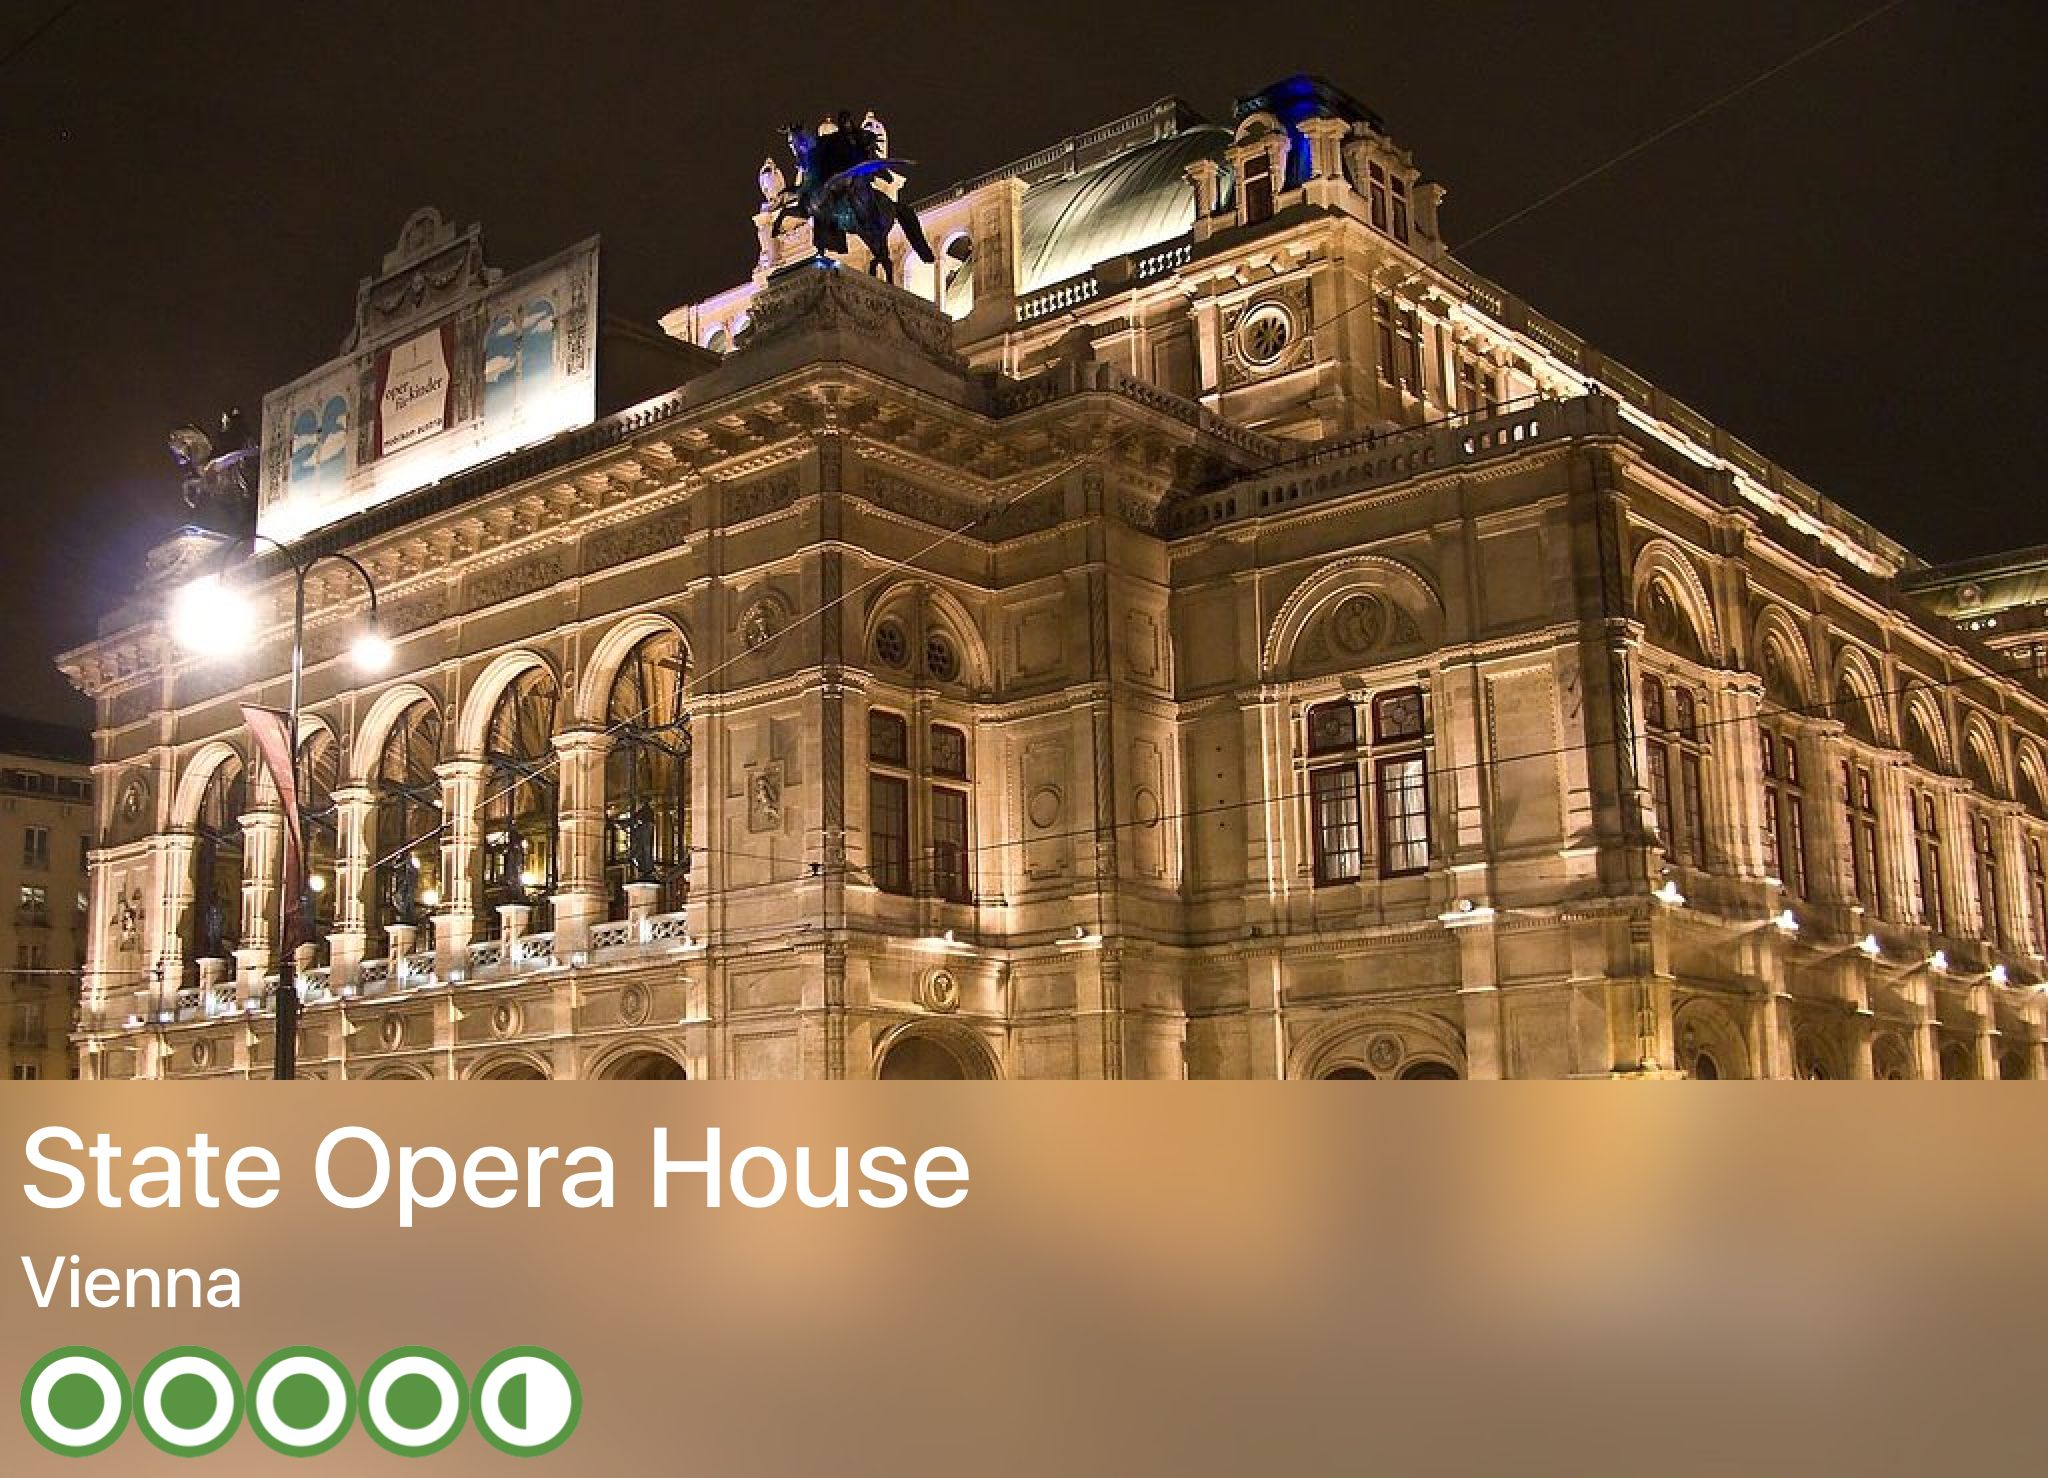 https://www.tripadvisor.co.uk/Attraction_Review-g190454-d194164-Reviews-State_Opera_House-Vienna.html?m=19904